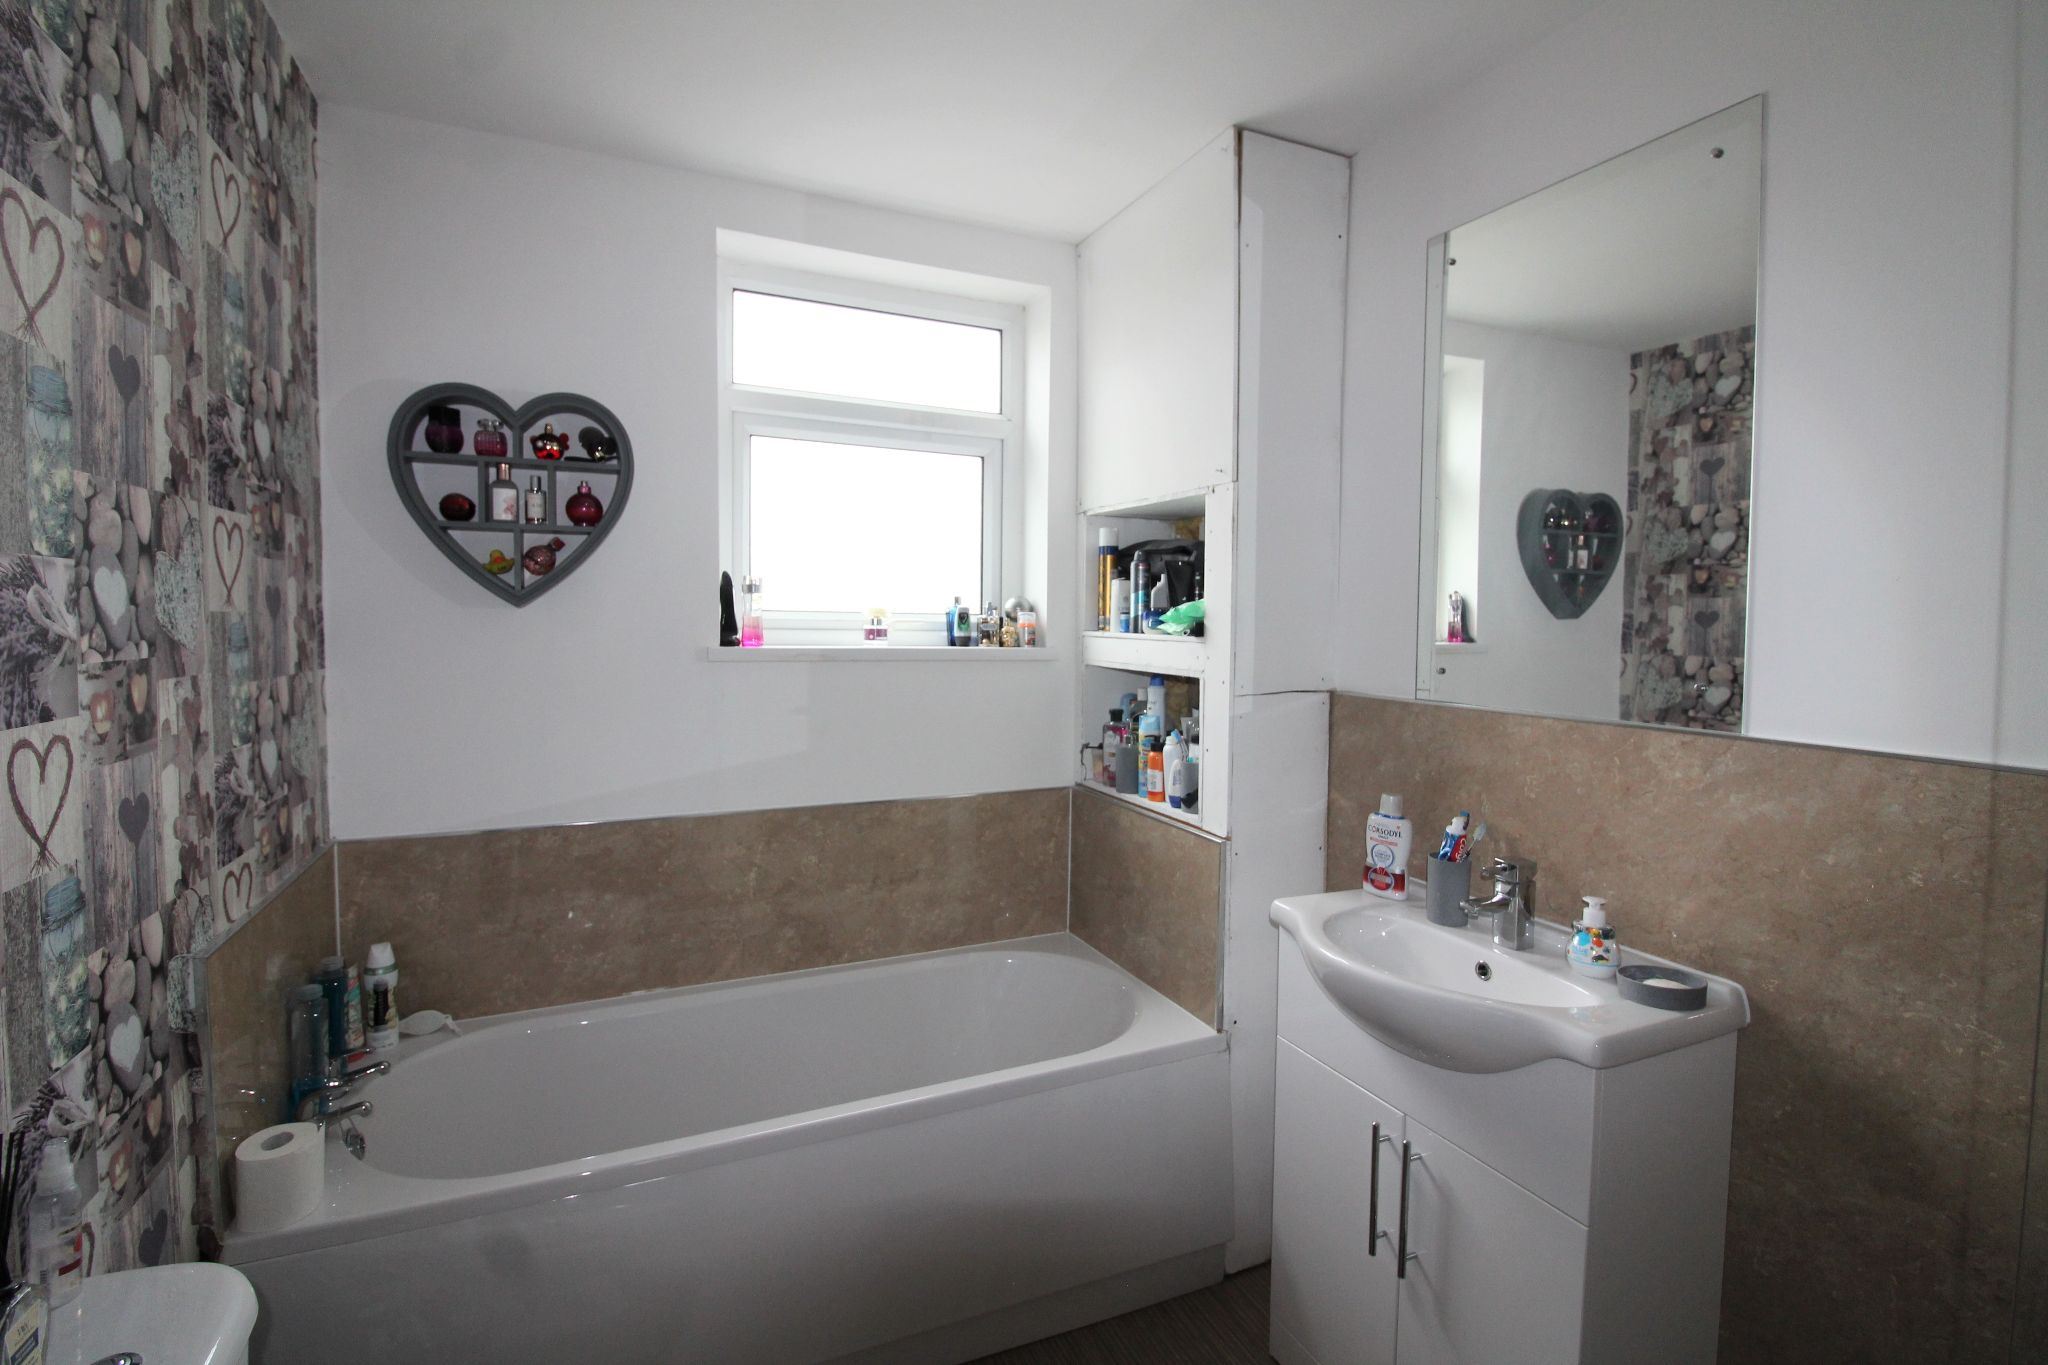 3 bedroom mid terraced house Sale Agreed in Roddymoor - Photograph 21.